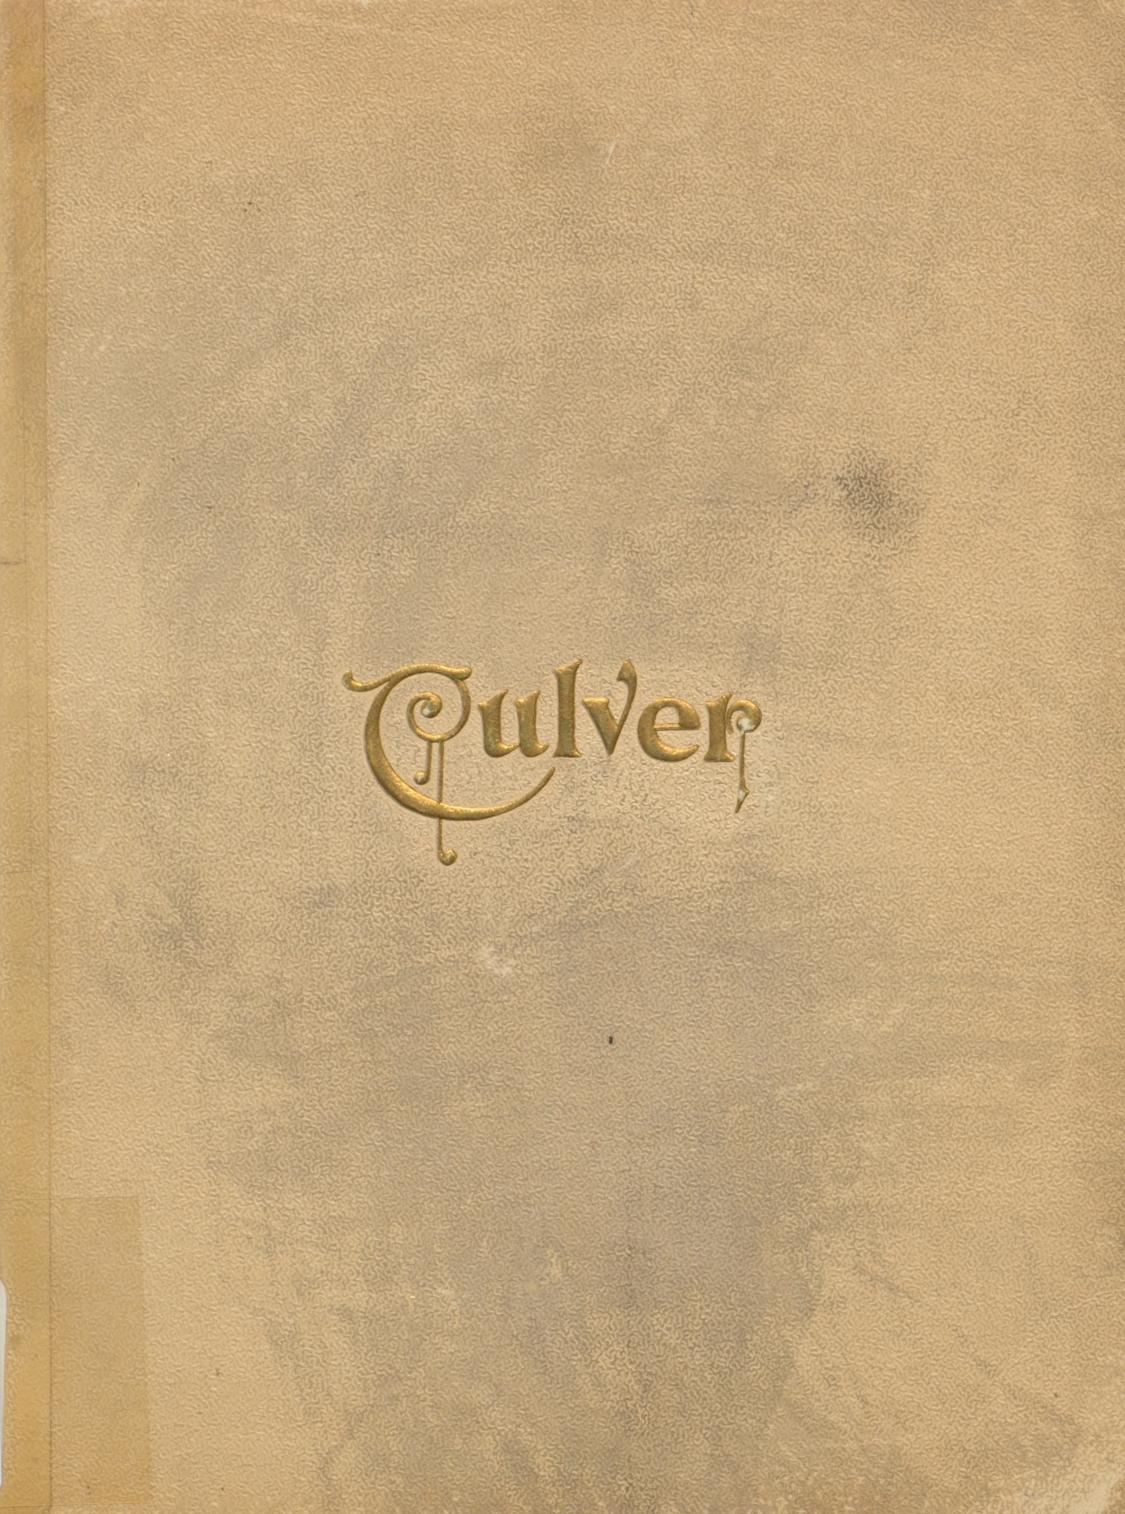 Cover image of Culver Military Academy's yearbook.